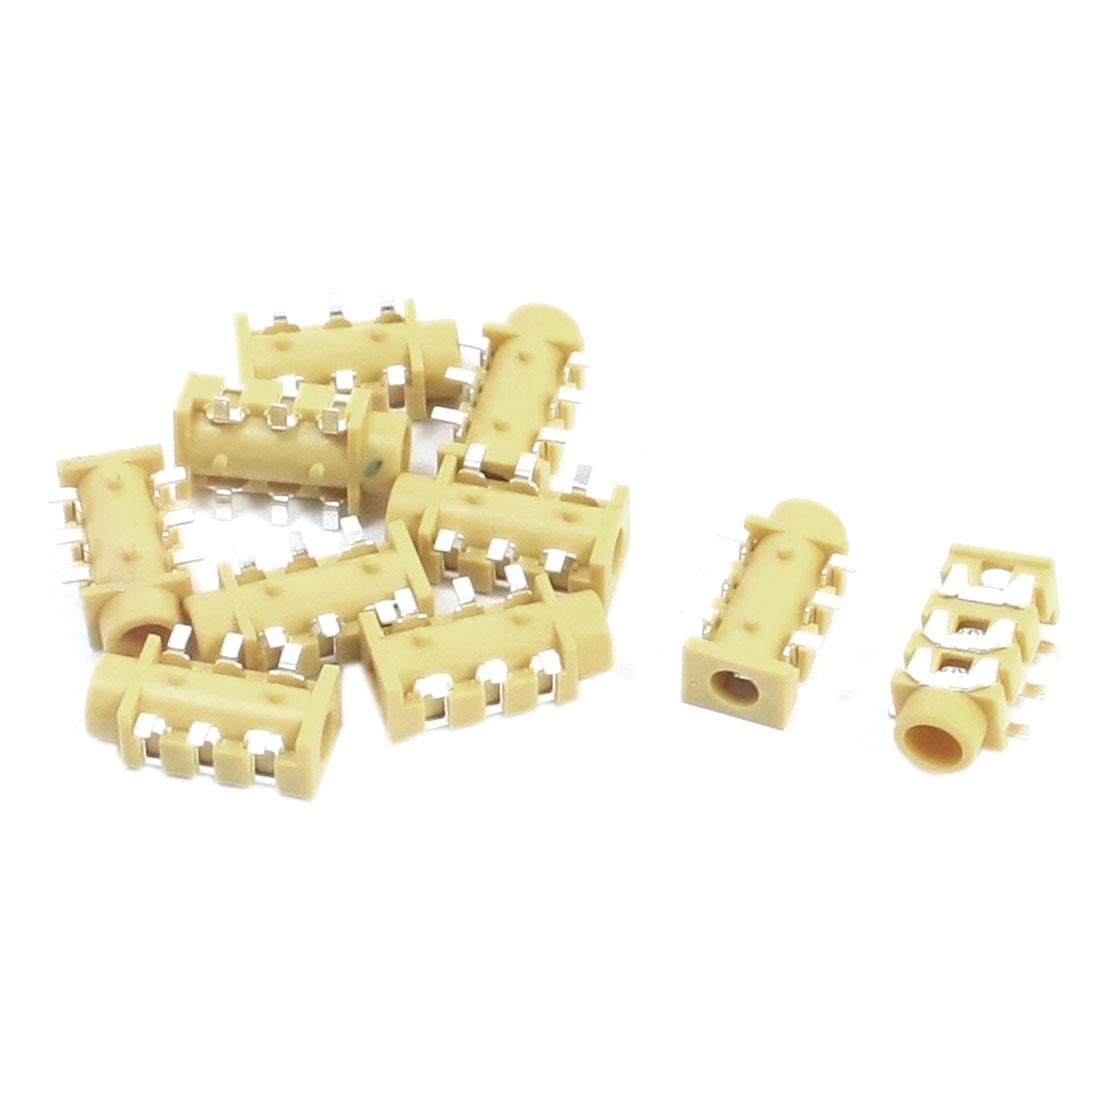 10pcs 6 Soldering Pins 3.5mm Female SMD Stereo Jack PCB Mount Connector Socket Yellow for Earphone Headphone